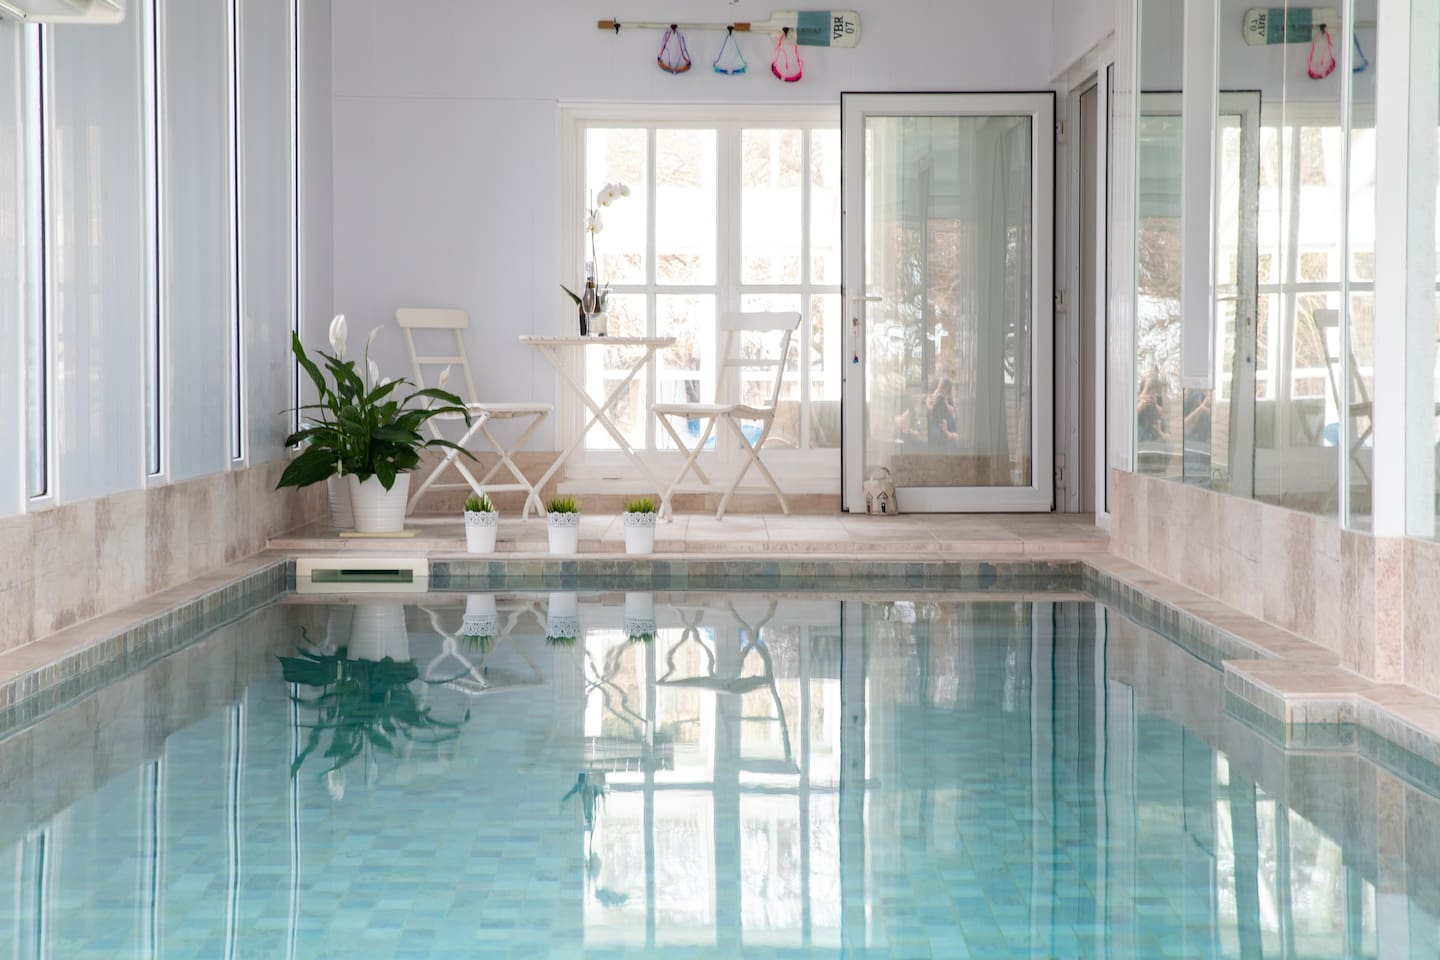 Fancy a dip in the indoor heated pool?